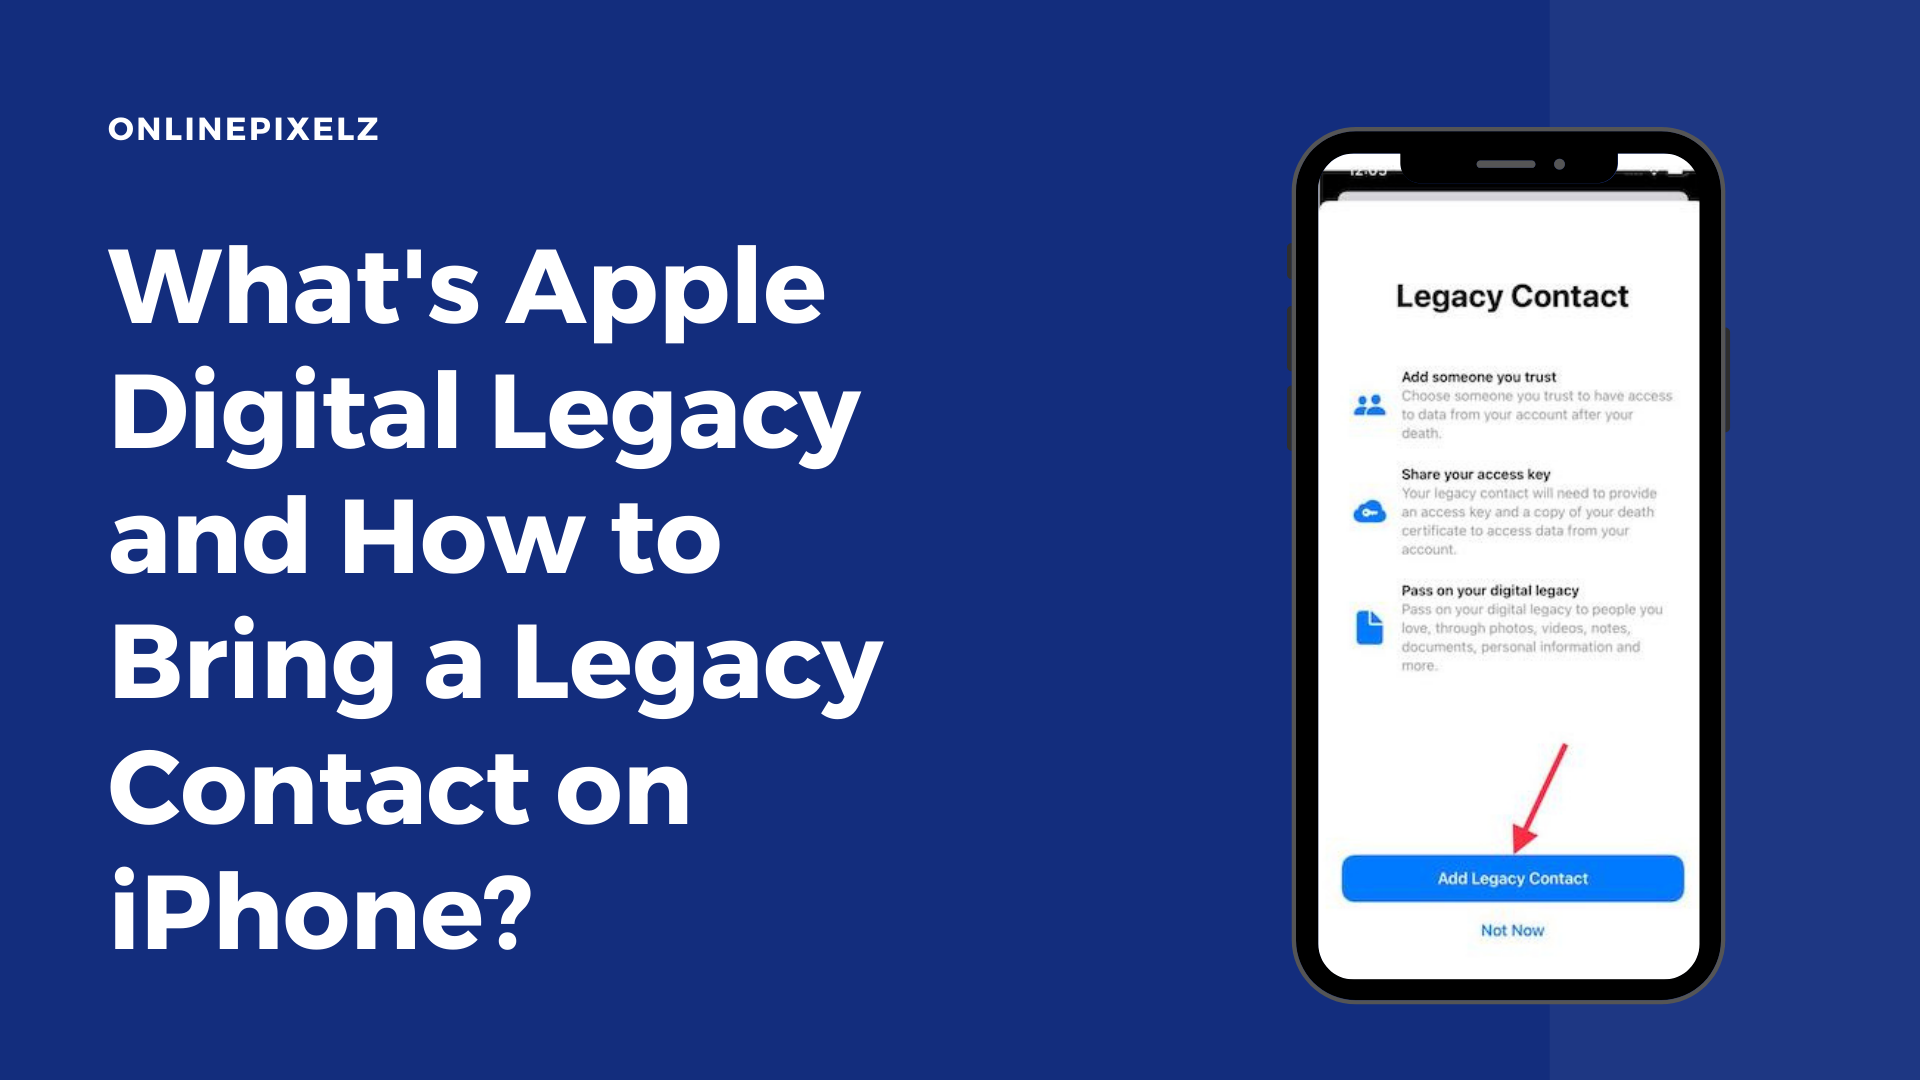 What's Apple Digital Legacy and How to Bring a Legacy Contact on iPhone?